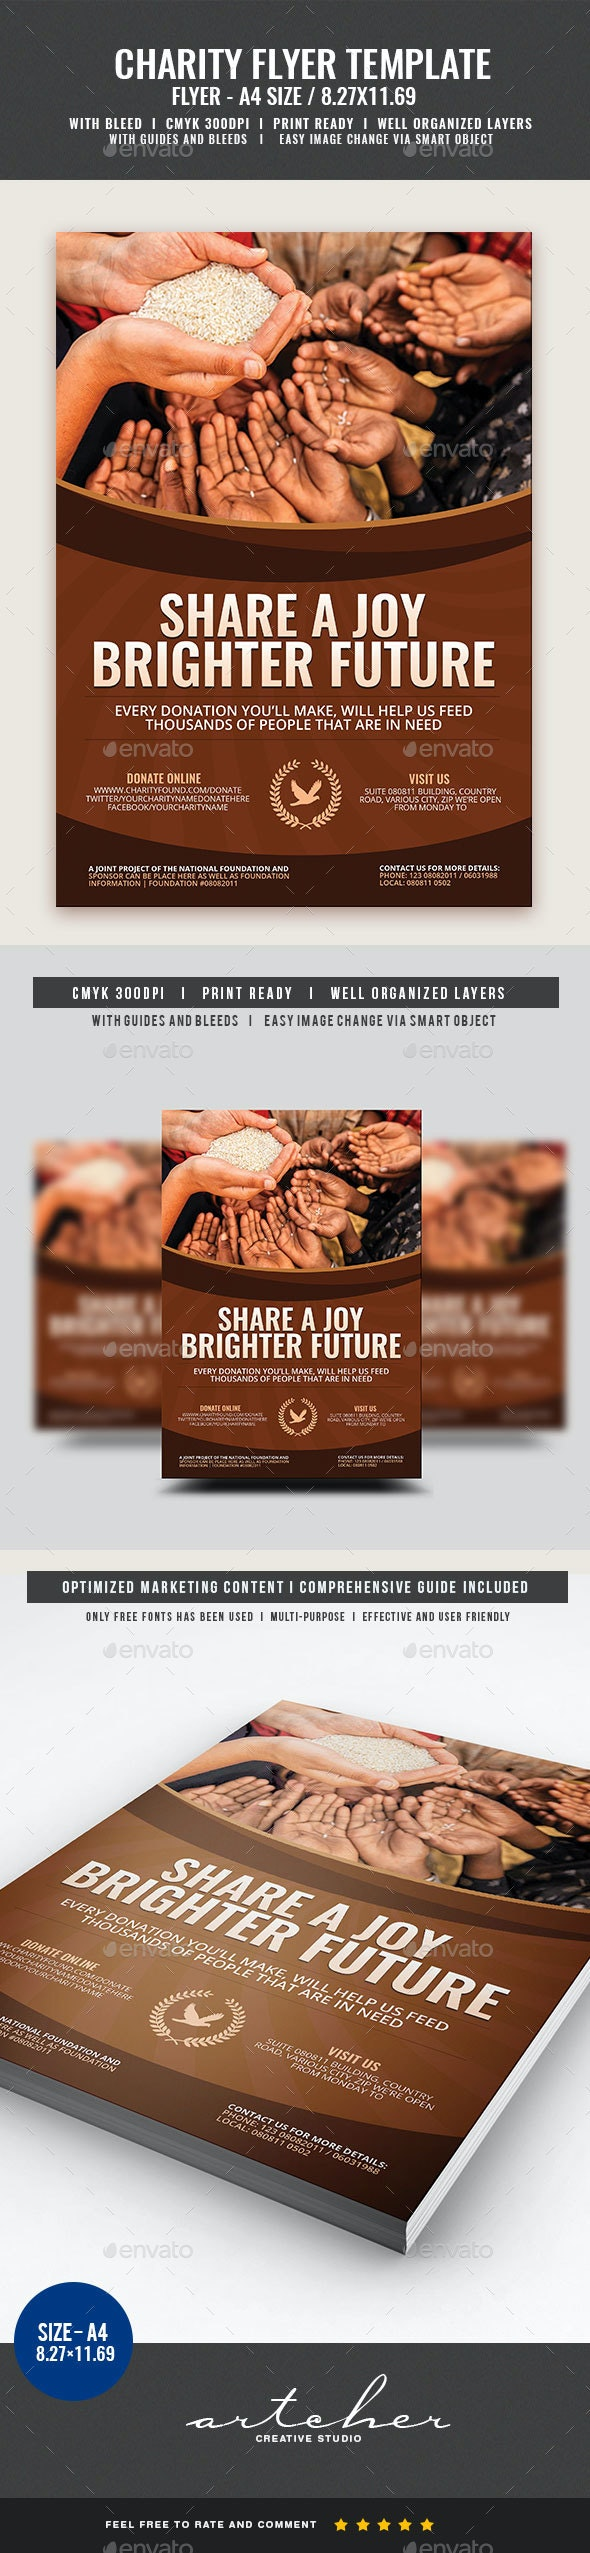 Charity Flyer Template - Flyers Print Templates